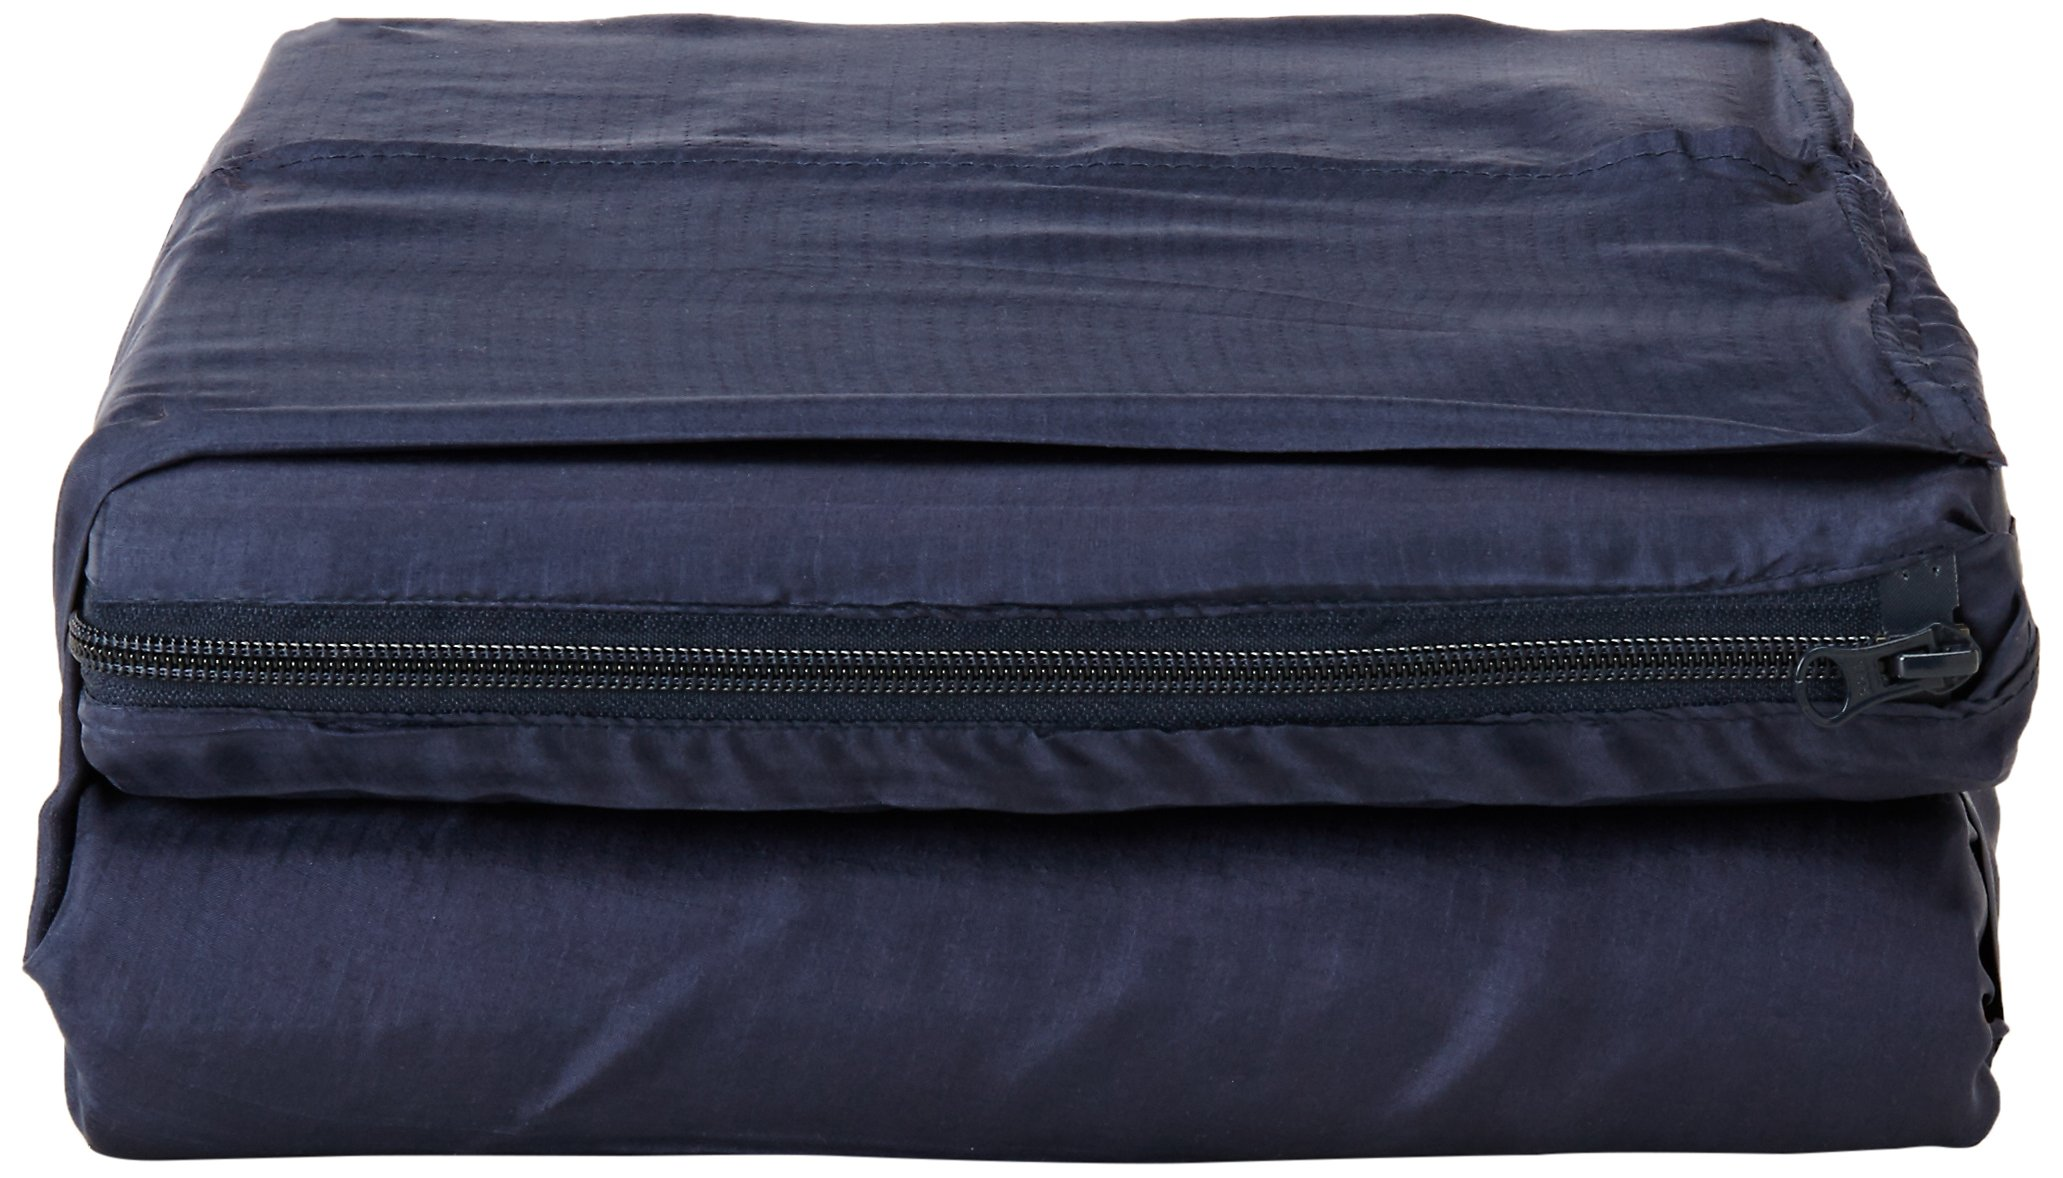 Cocoon RipStop Silk TravelSleepSystem TravelSheet Coupler by Cocoon